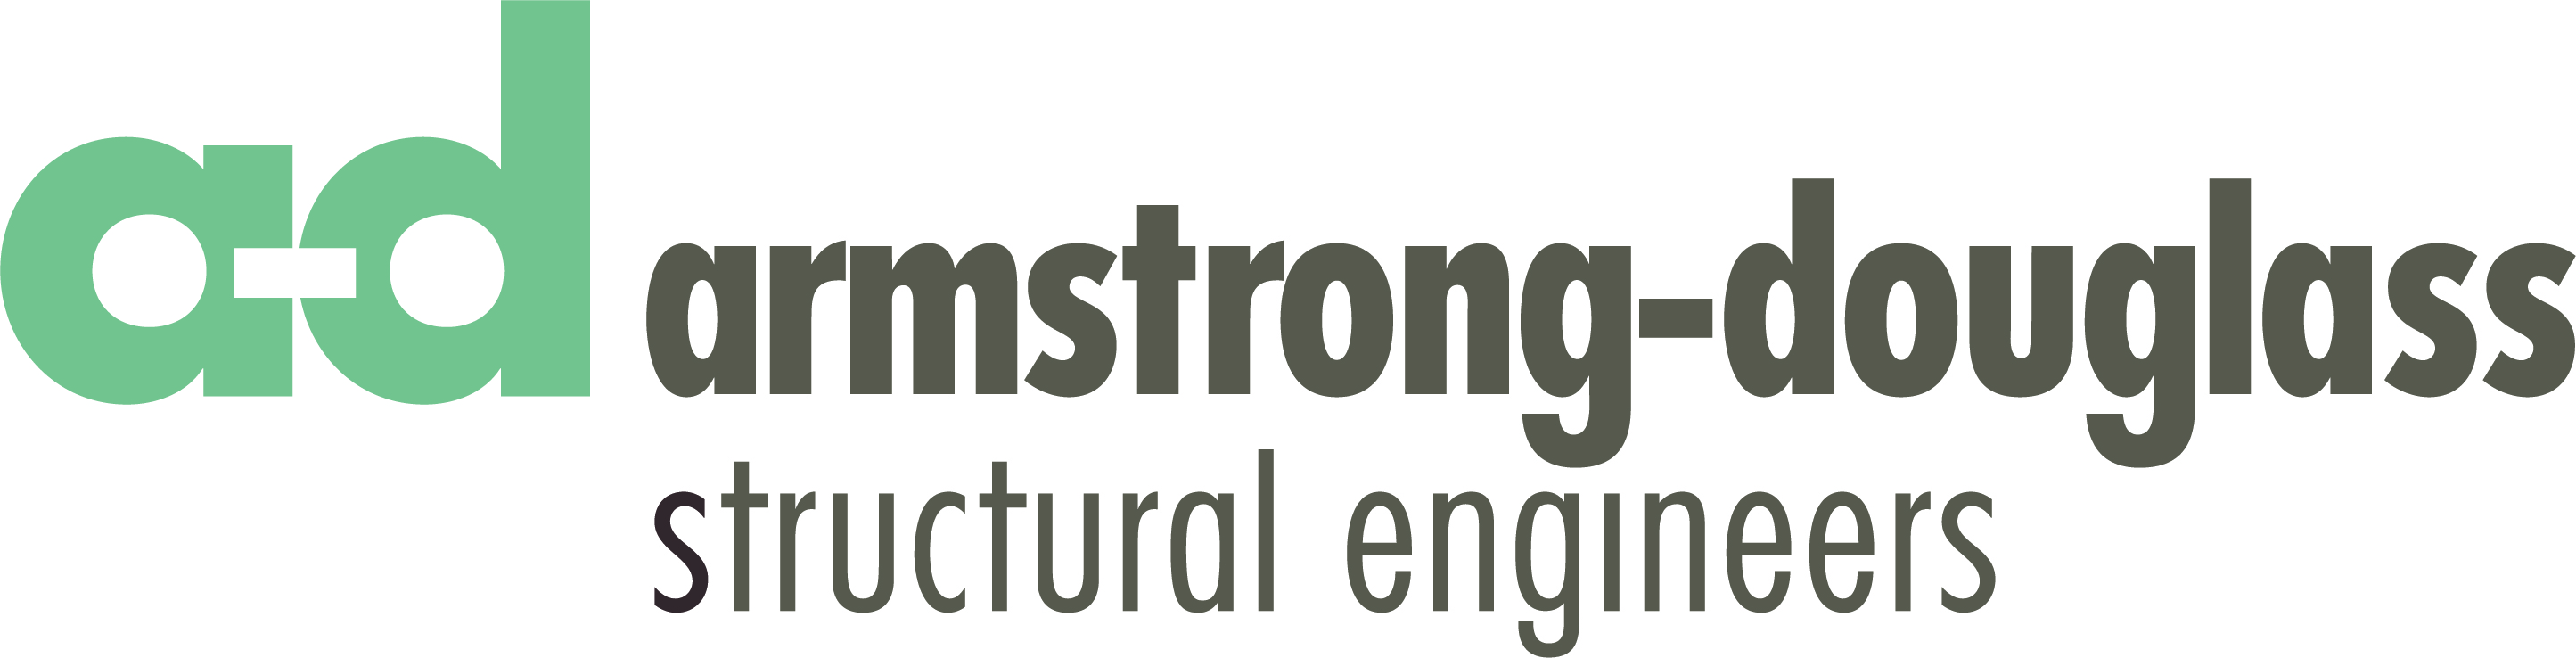 Design Awards: Armstrong-Douglass logo